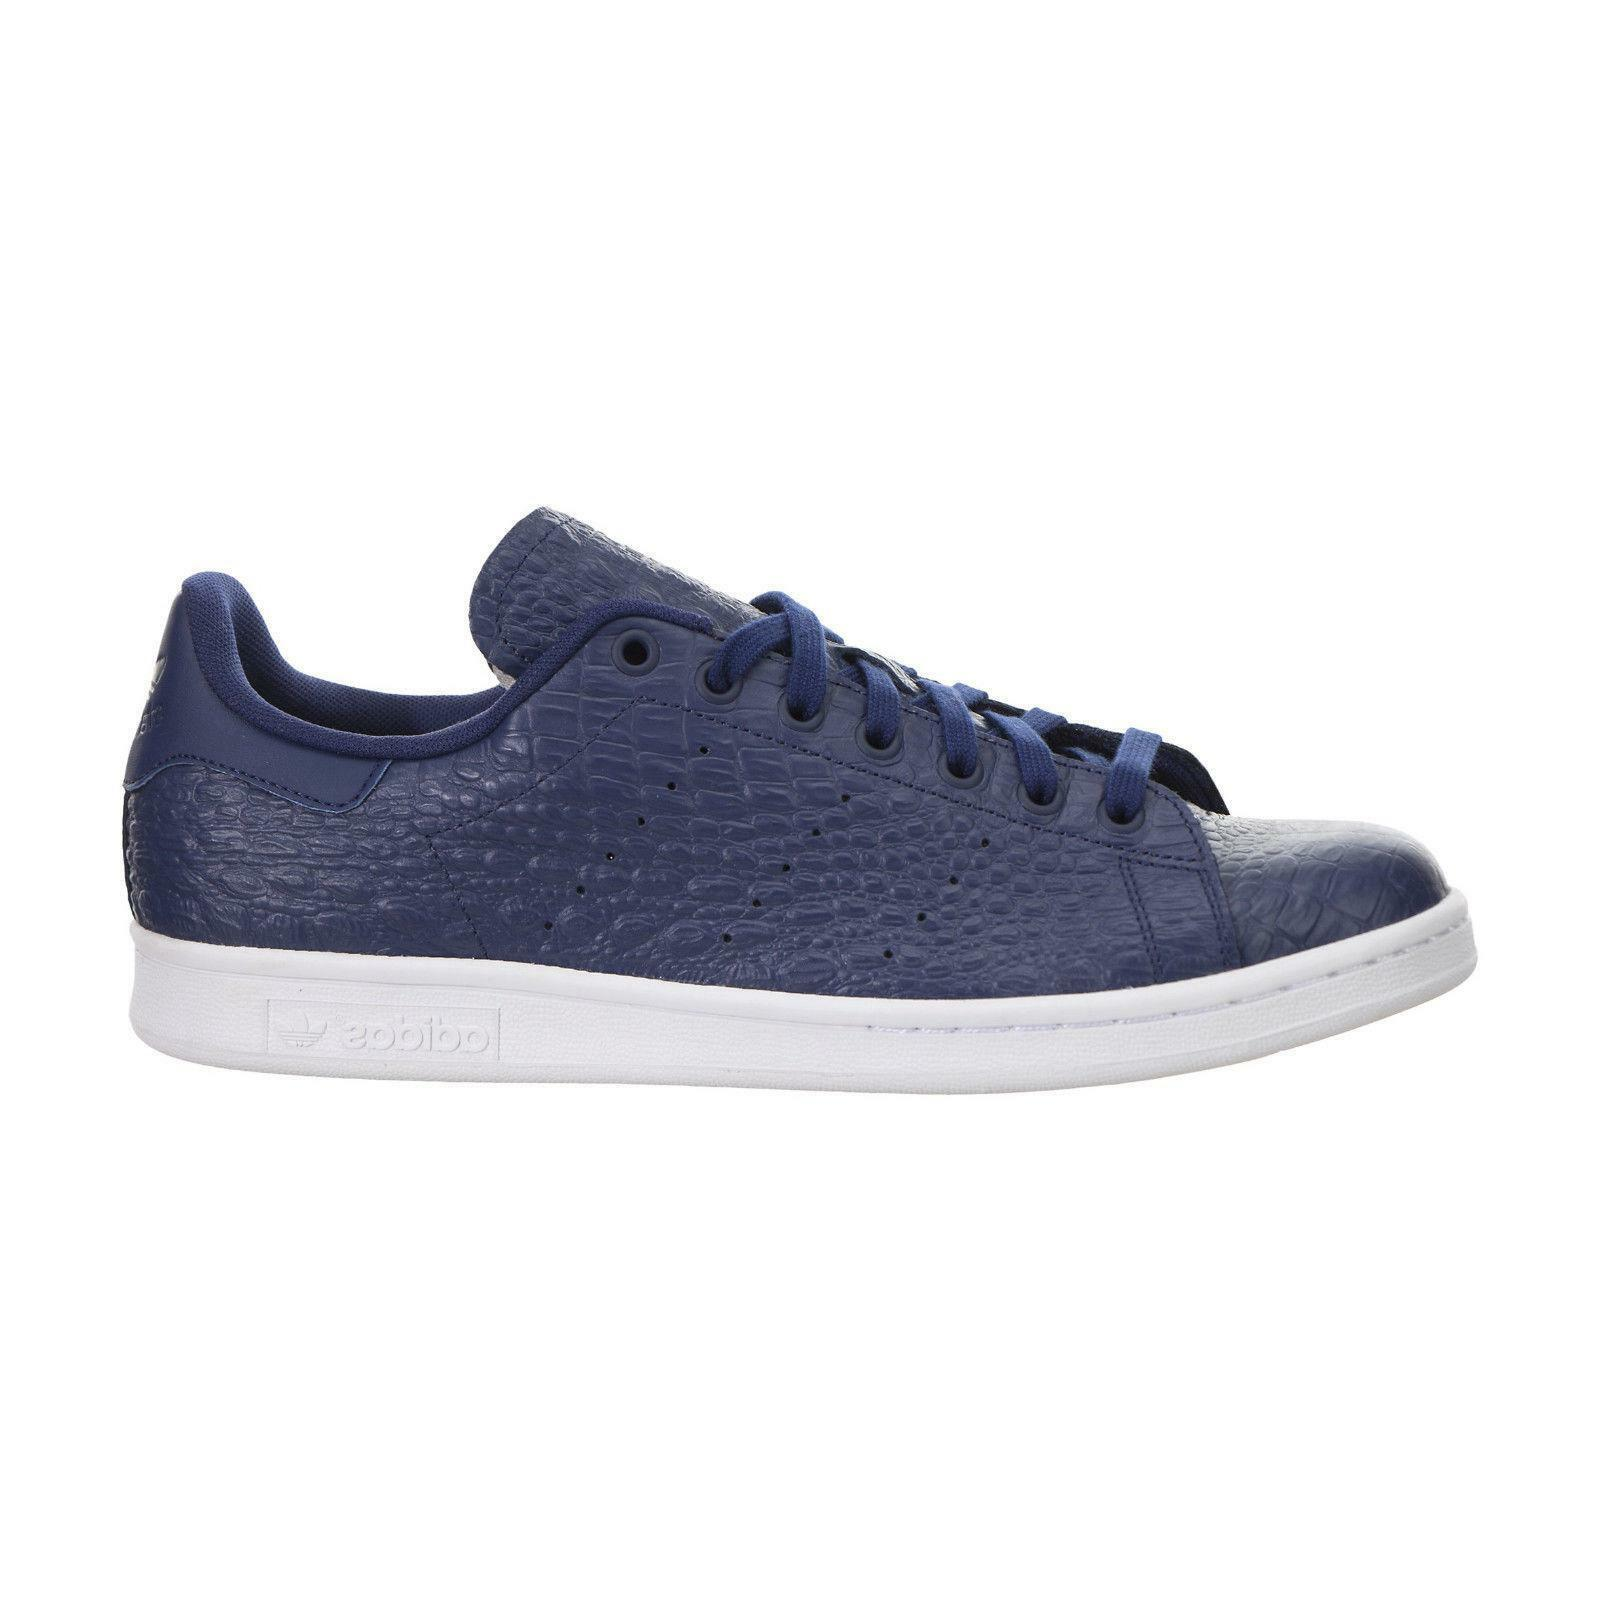 Da Uomo ADIDAS STAN SMITH Blu Scuro in Pelle Casual Scarpe Trainer AQ2730